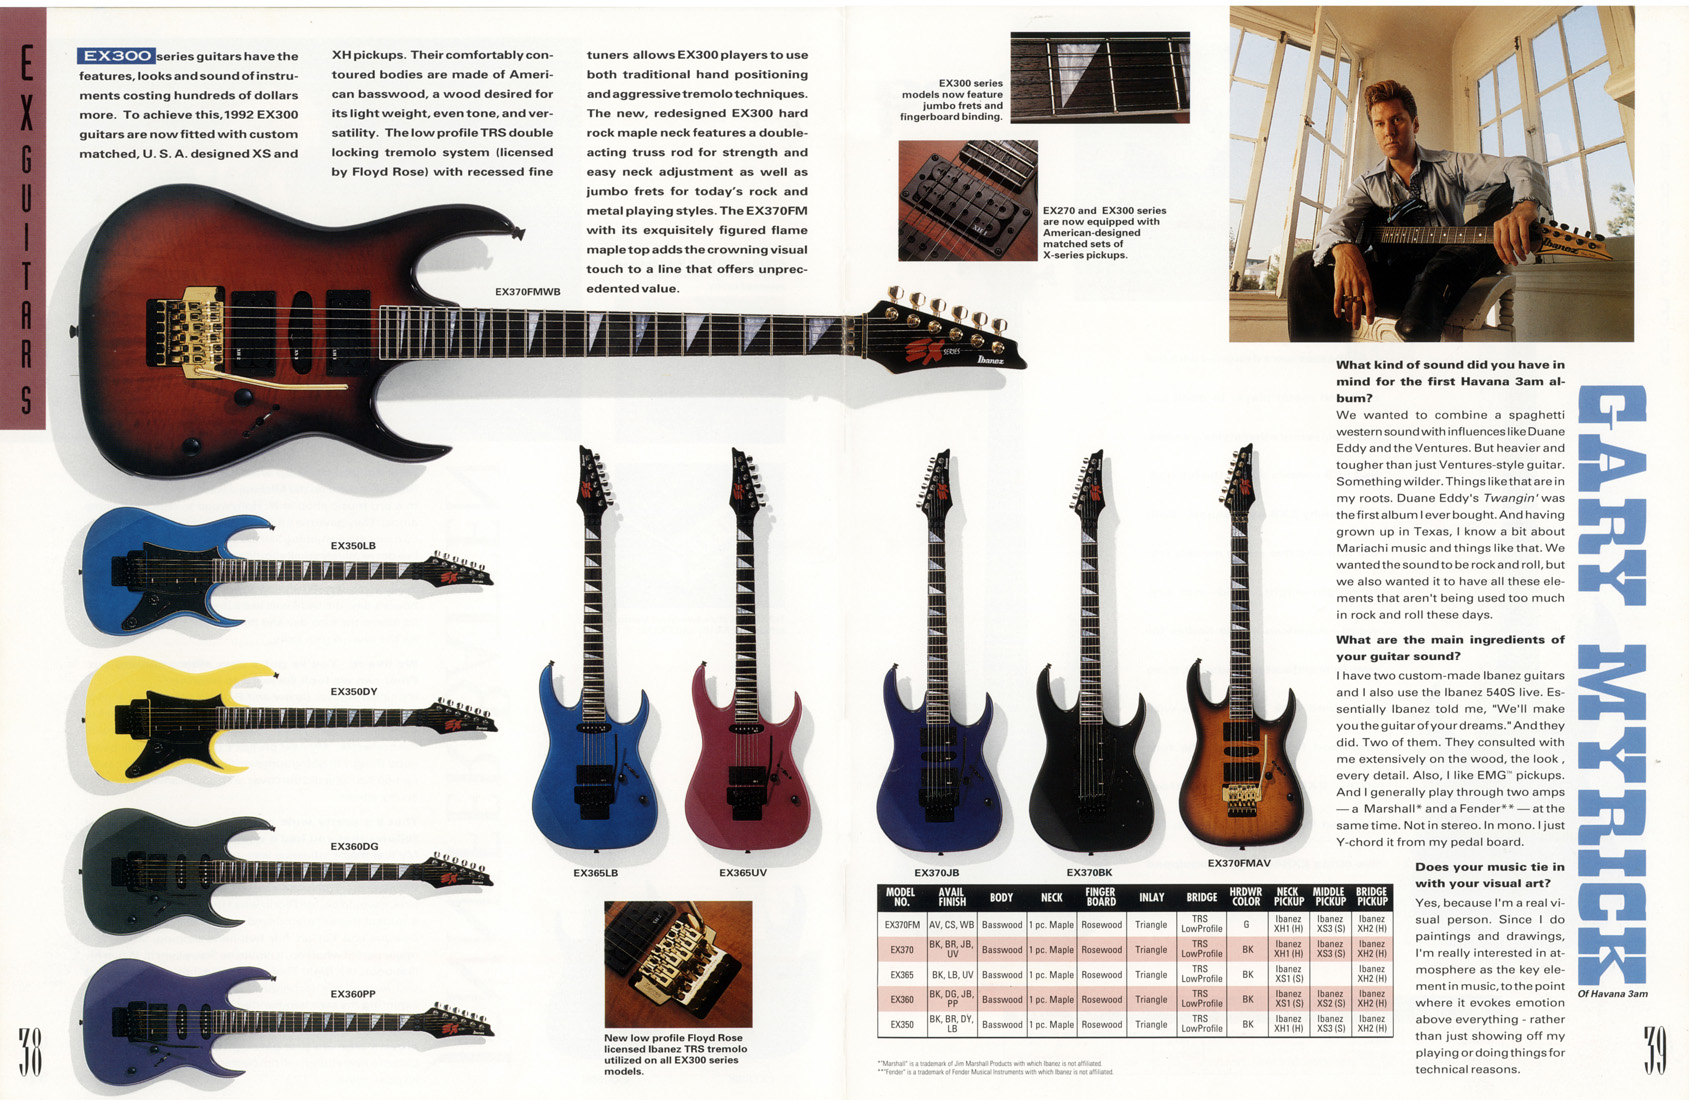 Ex Series Ibanez Wiki Fandom Powered By Wikia Fender American Special Hss Strat Wiring Diagram 1992